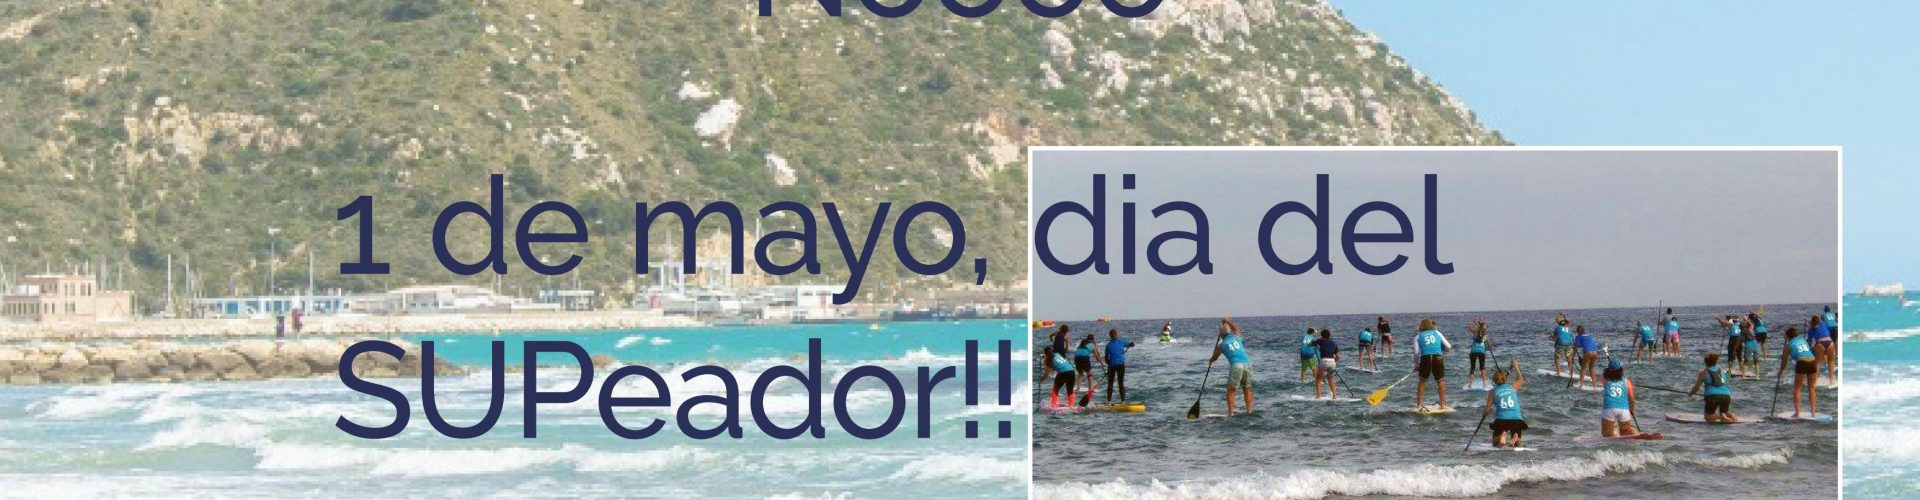 SUP in Calpe, 1st of may is SUPeators day!